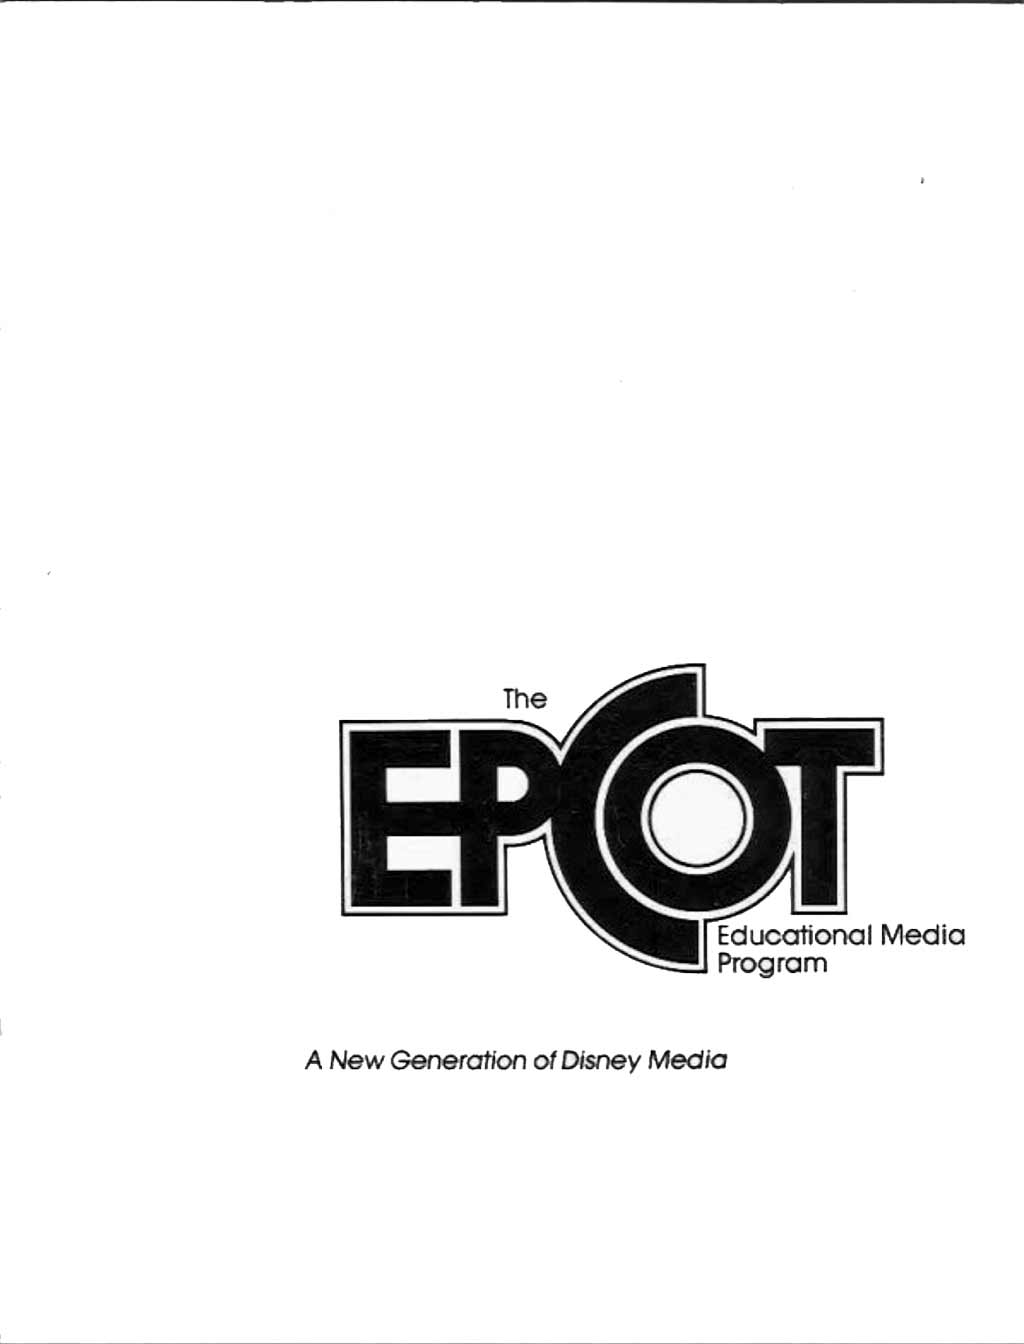 Epcot education pamphlet